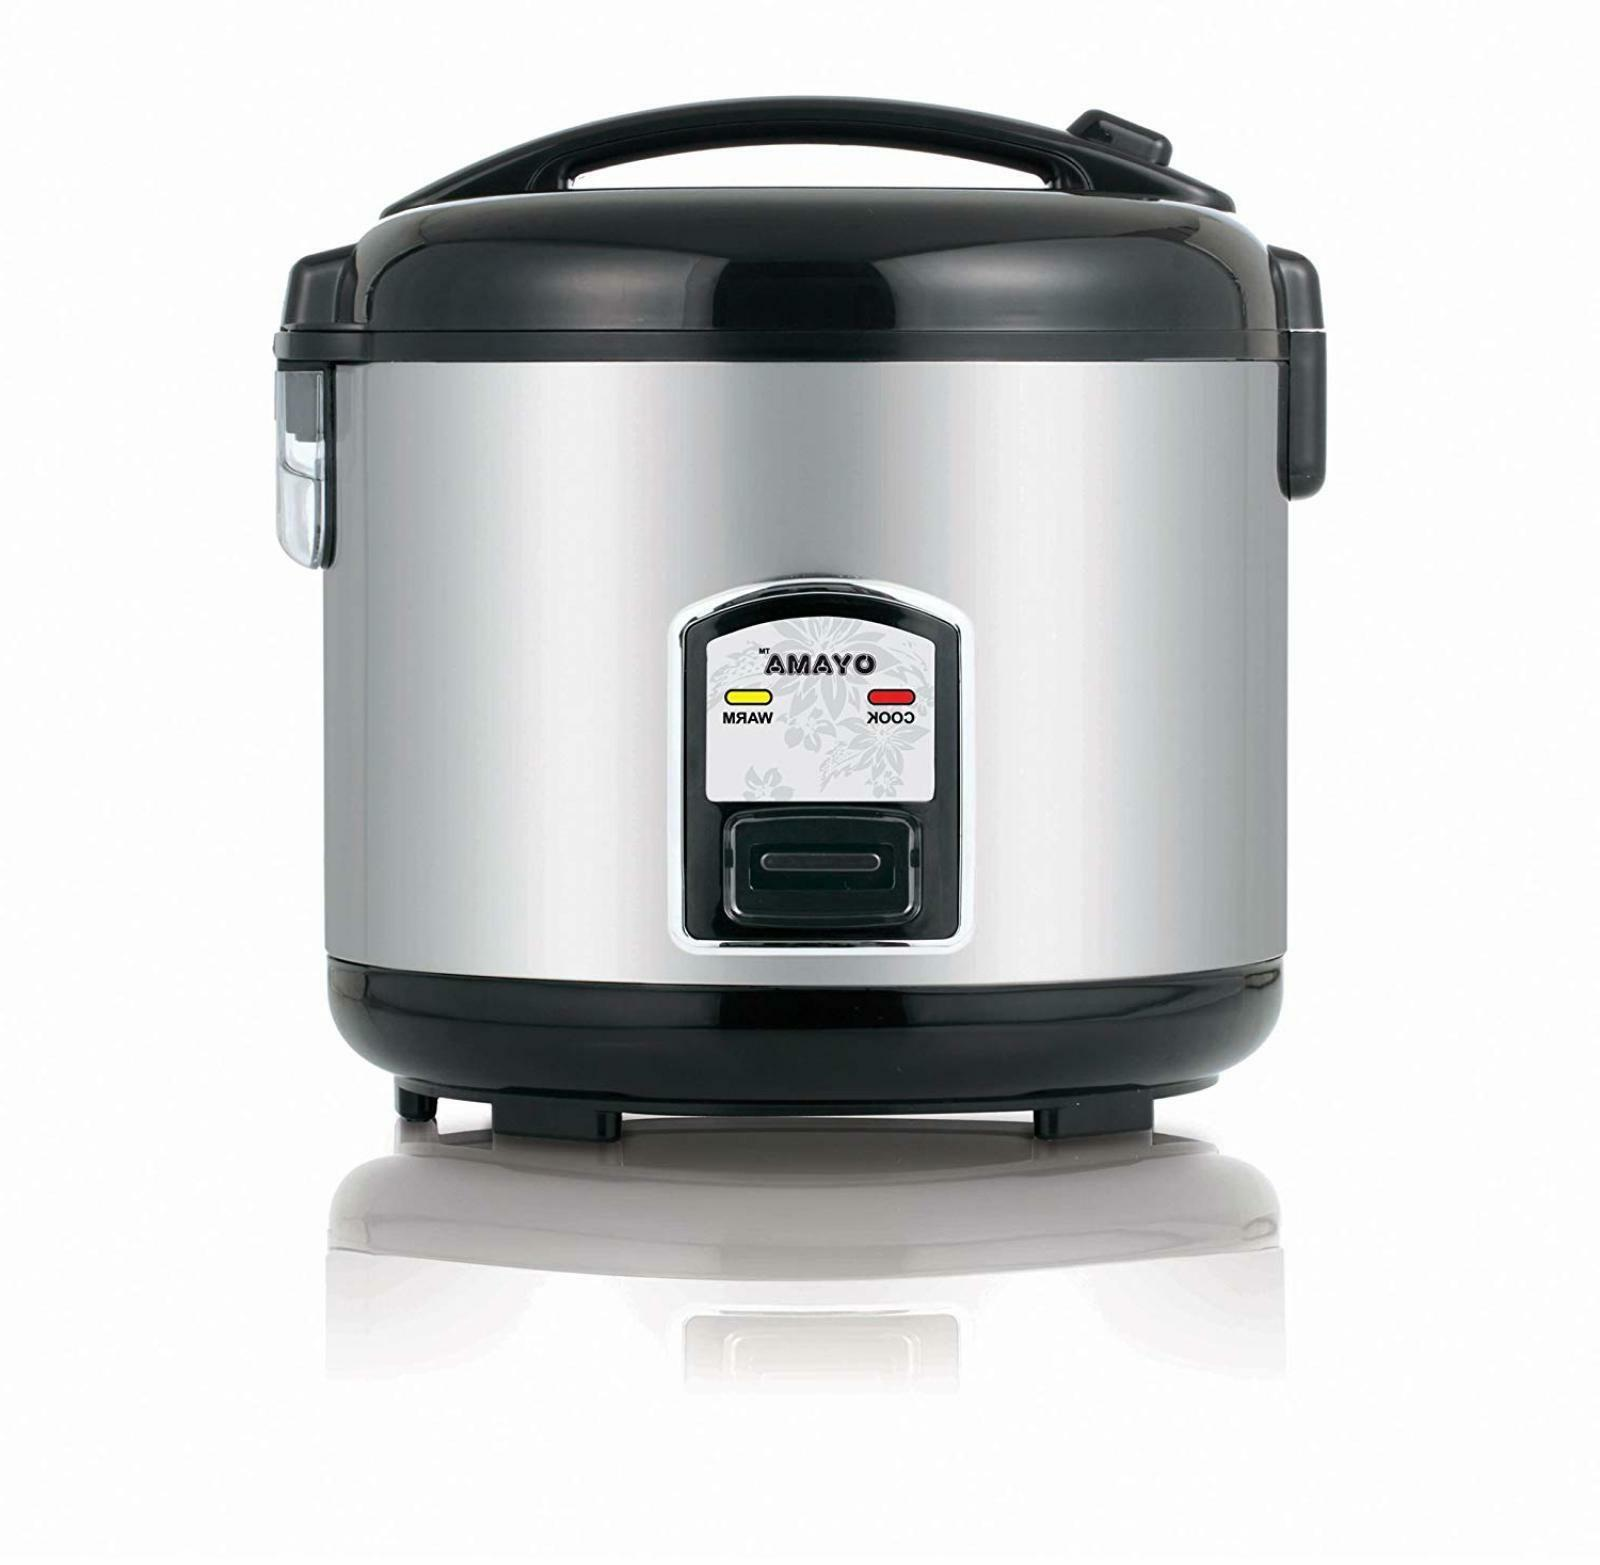 7 Cup Rice Cooker, Cooking Bowl with Layered Stainless